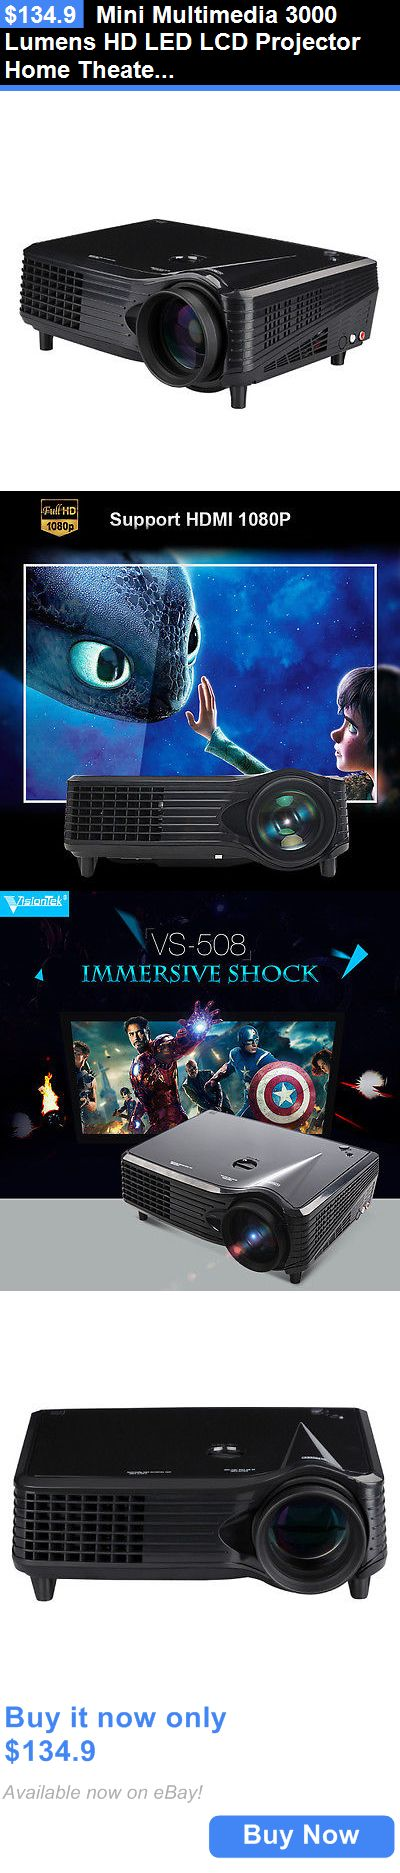 Home Theater Projectors: Mini Multimedia 3000 Lumens Hd Led Lcd Projector Home Theater Tv/Hdmi 1080P 3D BUY IT NOW ONLY: $134.9